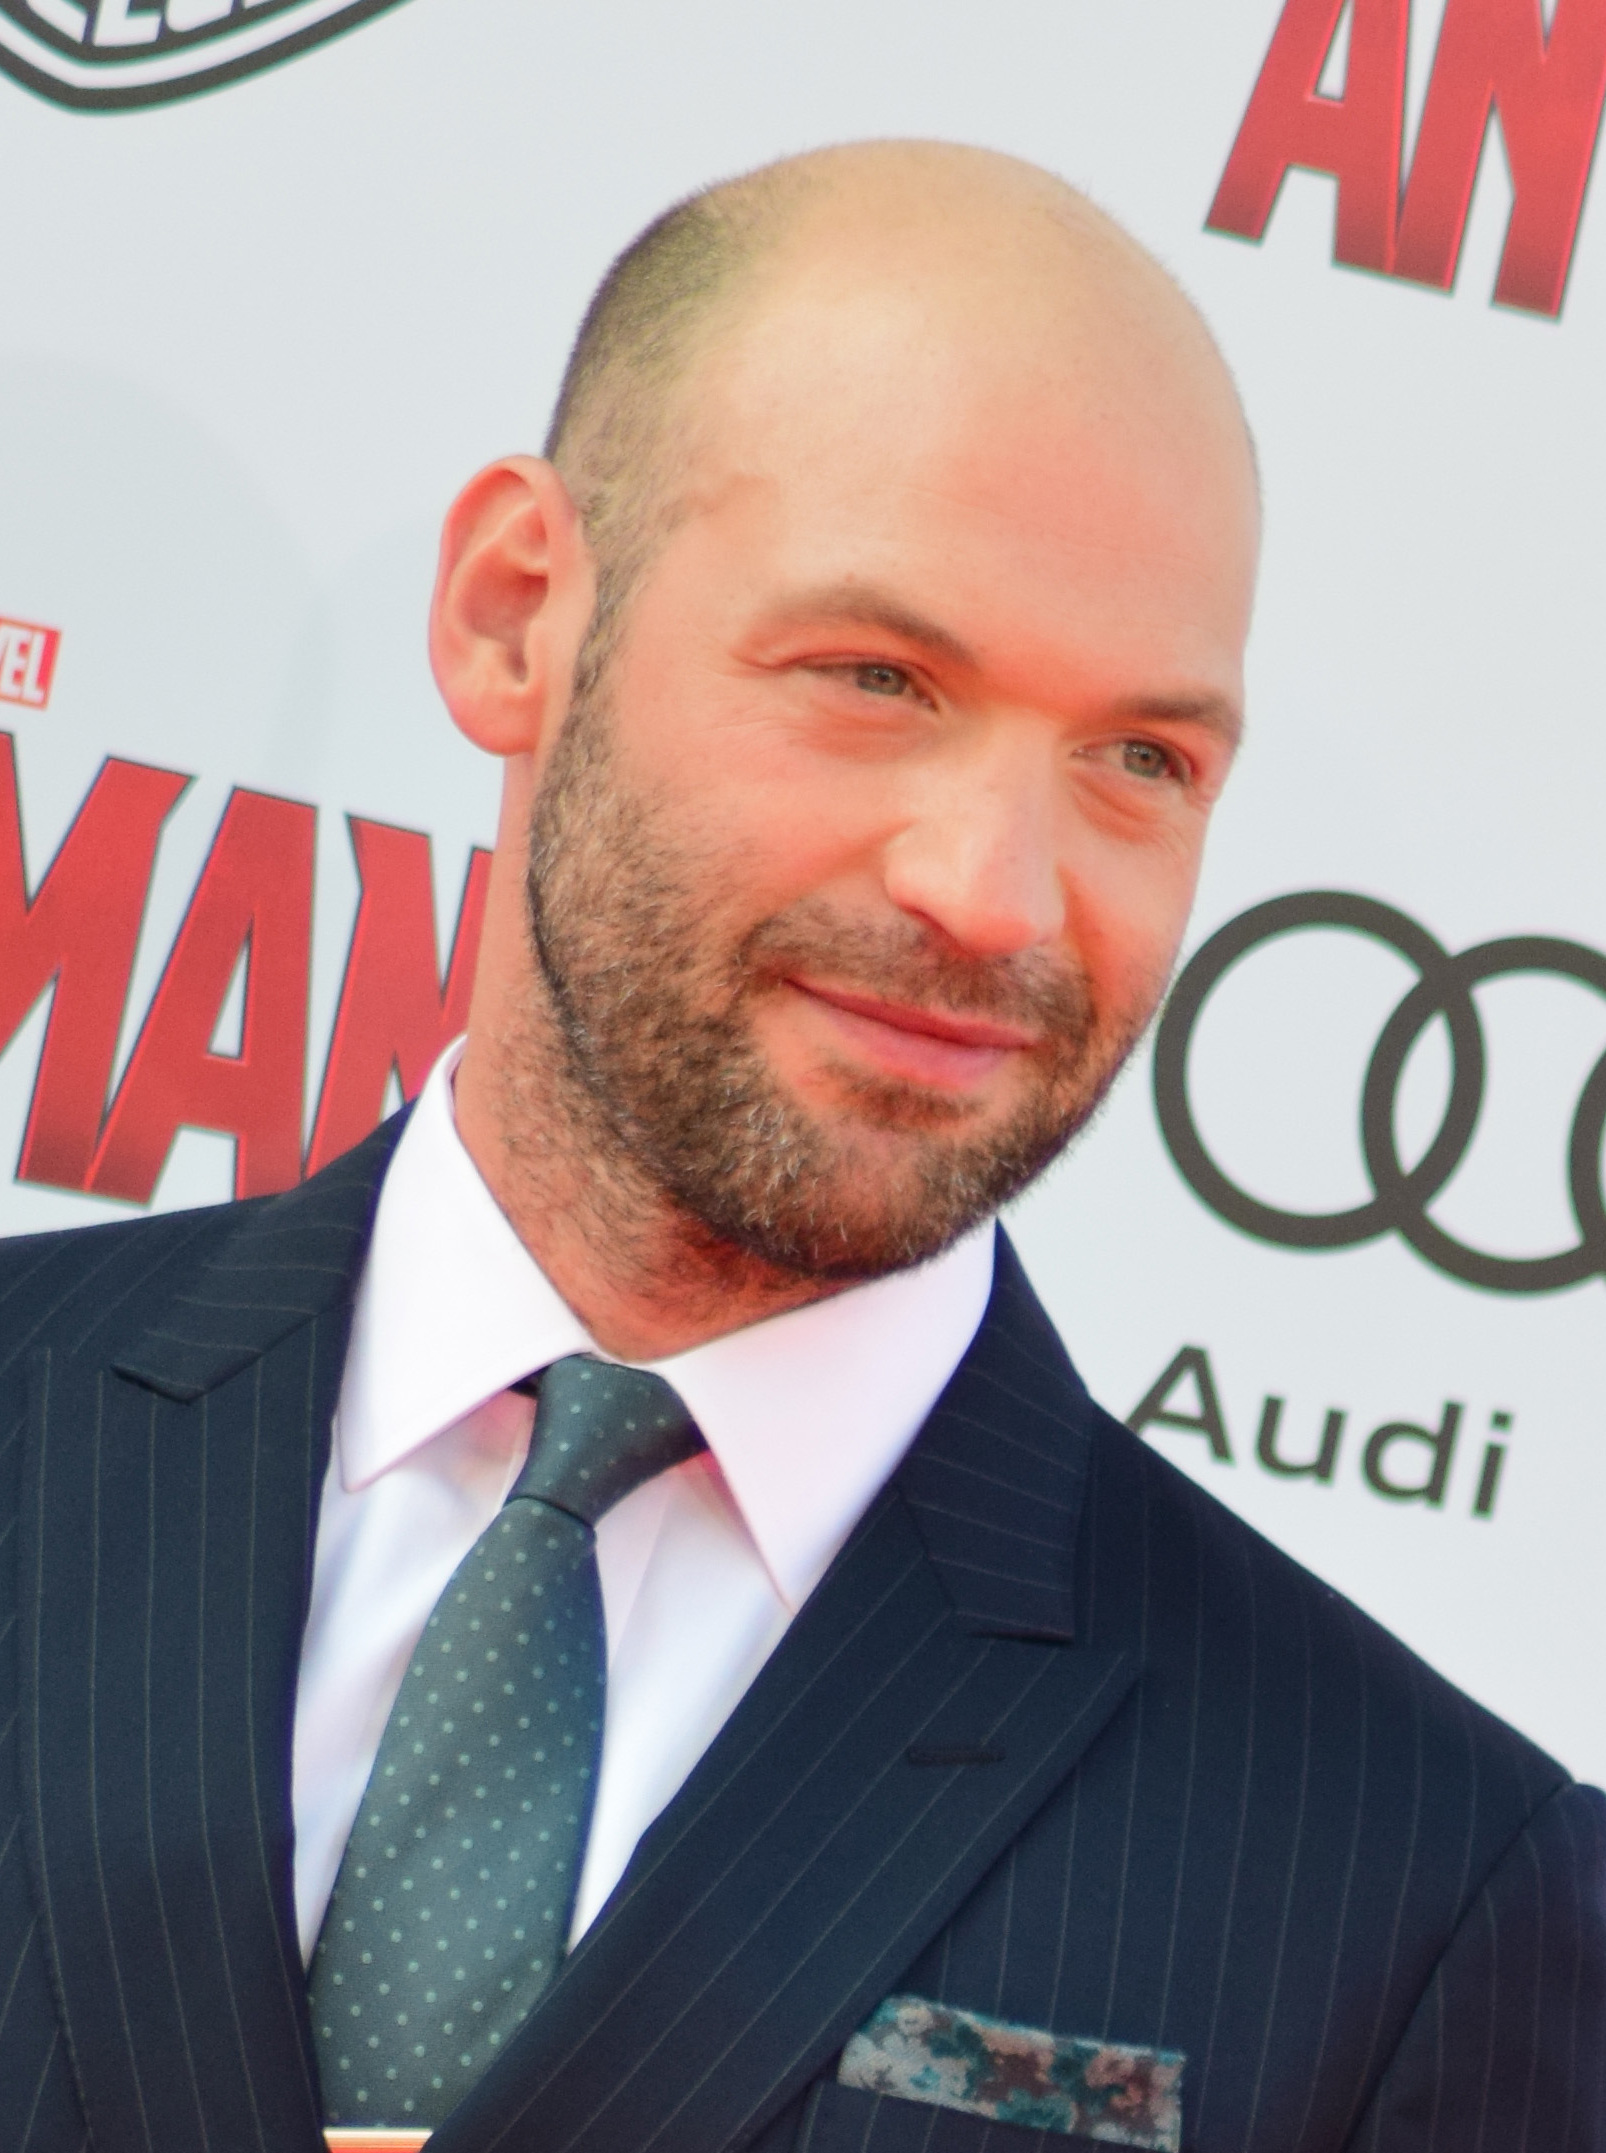 corey stoll house of cardscorey stoll wife, corey stoll net worth, corey stoll black mass, corey stoll gold, corey stoll ernest hemingway, corey stoll charmed, corey stoll hemingway, corey stoll height, corey stoll house of cards, corey stoll, corey stoll imdb, corey stoll the strain, corey stoll homeland, corey stoll twitter, corey stoll midnight in paris, corey stoll ant man, corey stoll non stop, corey stoll married, corey stoll wig, corey stoll movies and tv shows